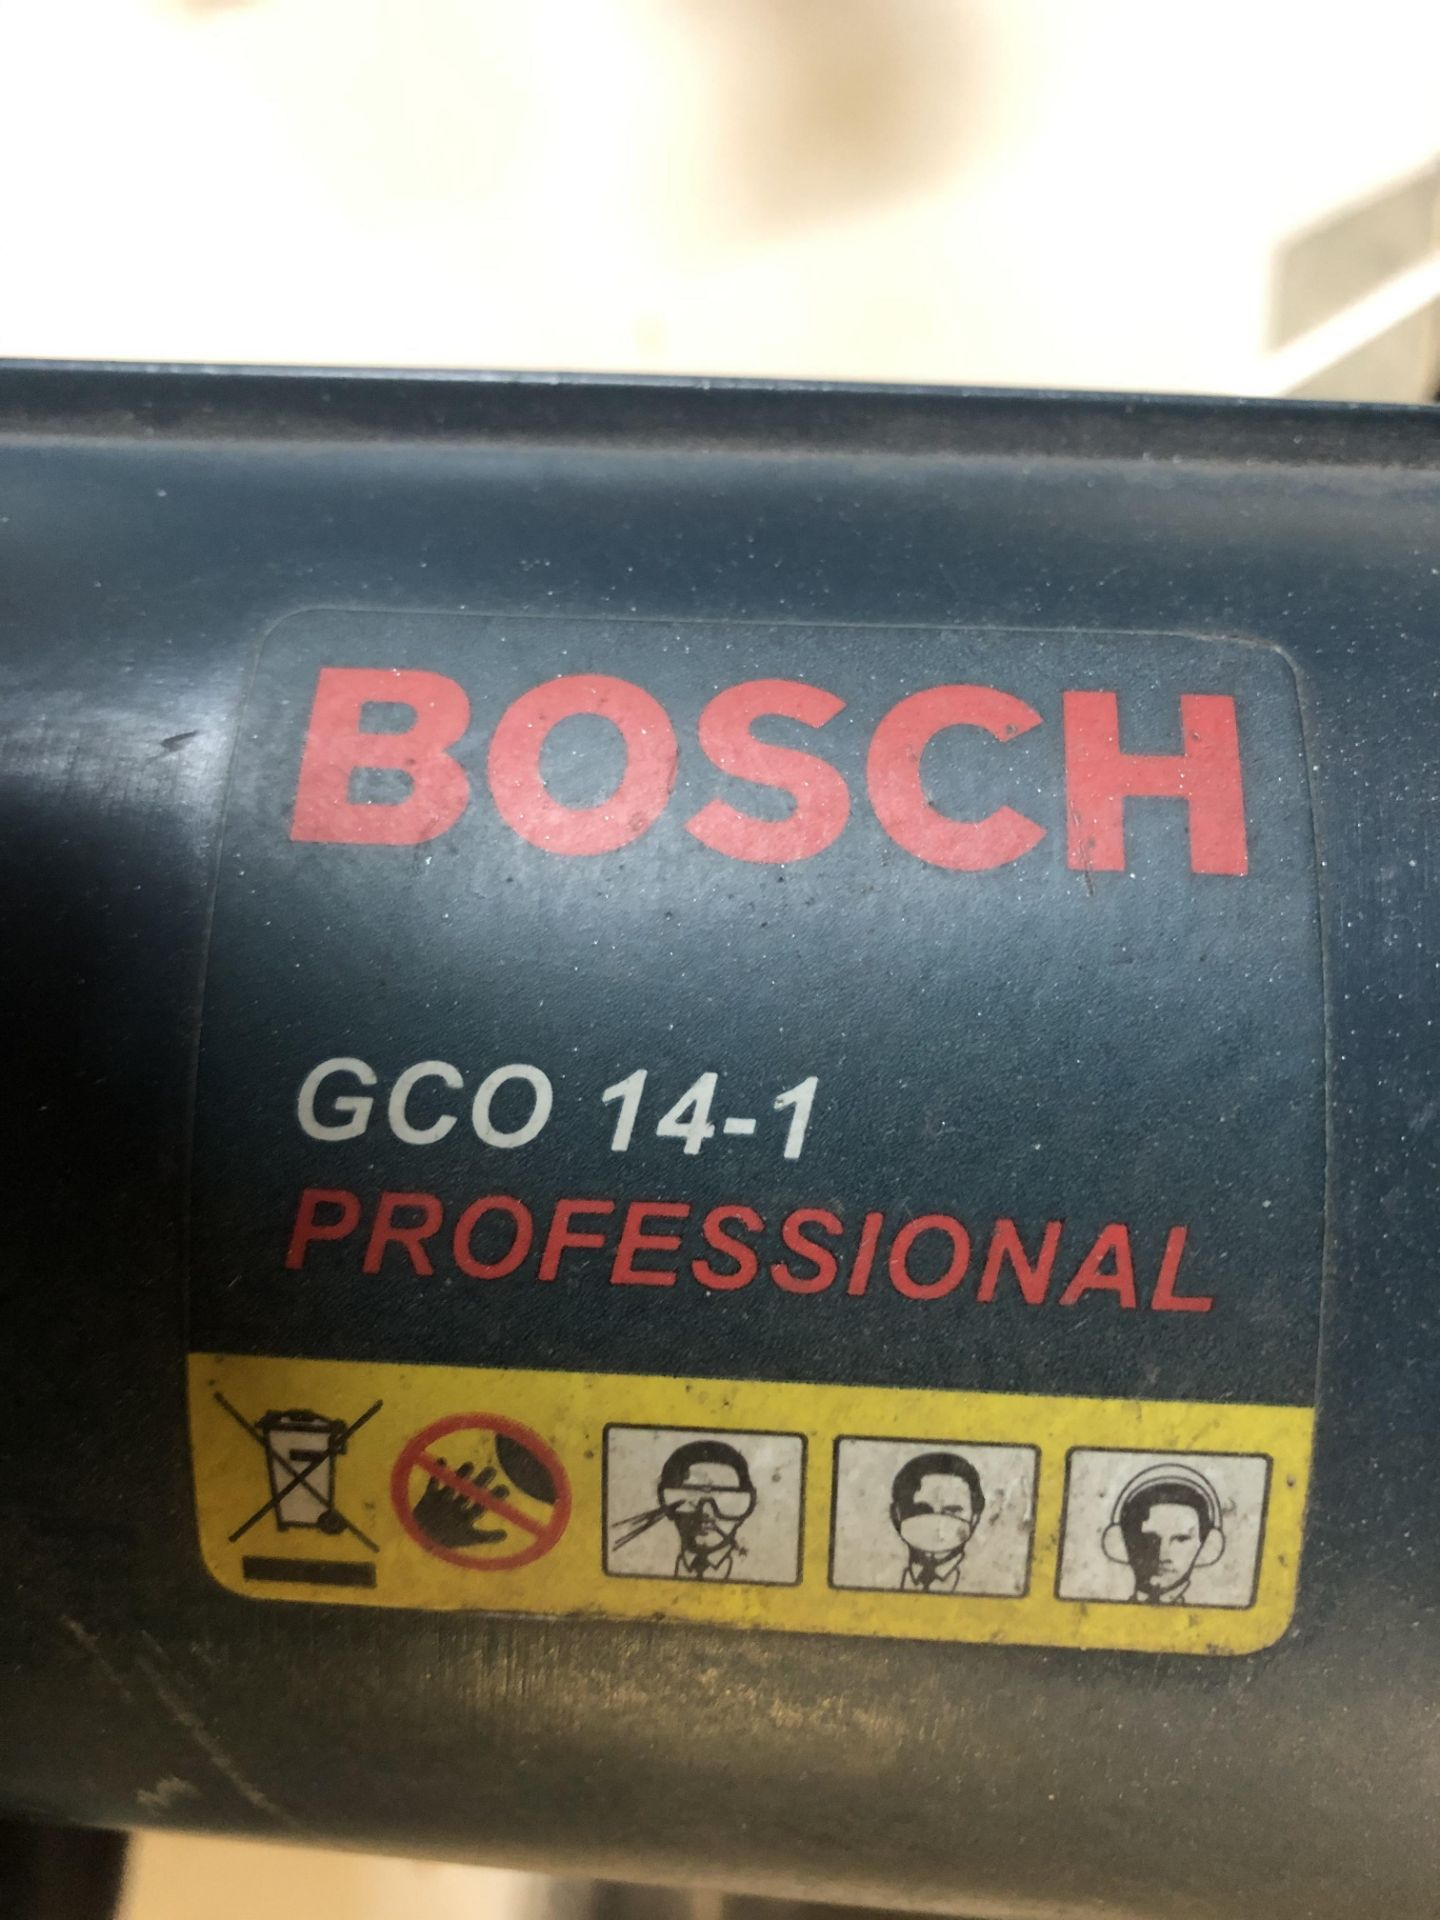 Lot 52 - Bosch GCO 14-1 Portable Cut-Off Saw